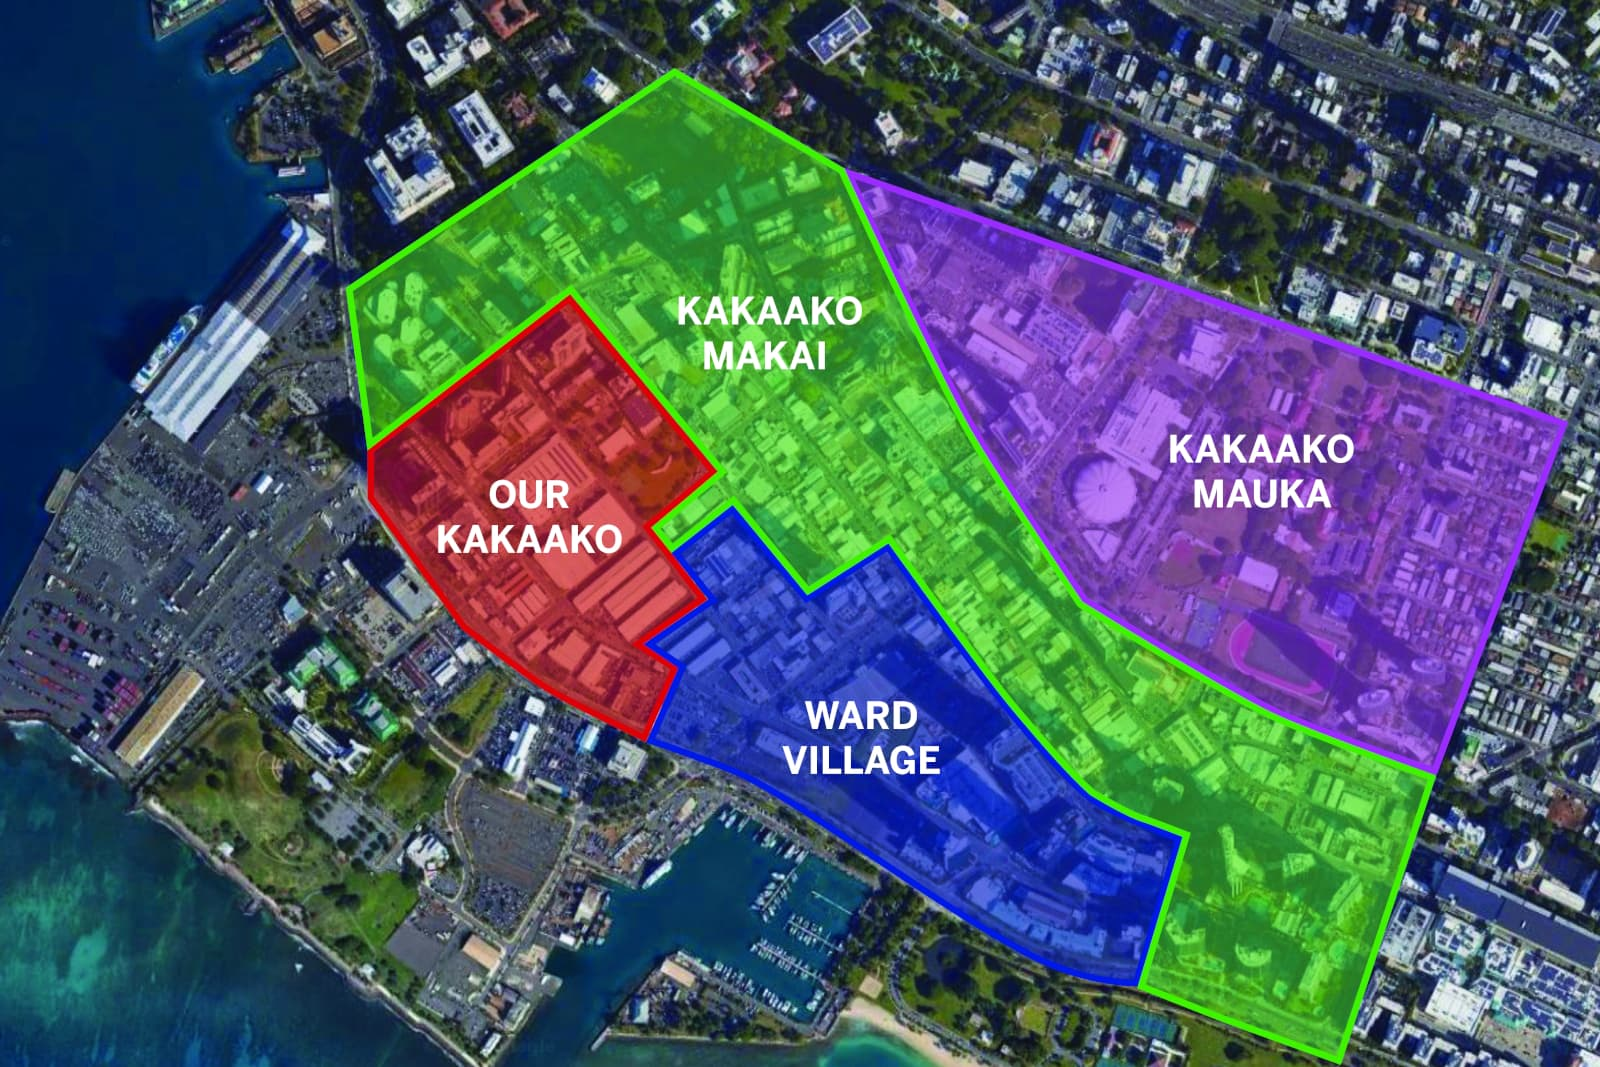 Map showing the four main regions of the Kakaako area in Metro Honolulu